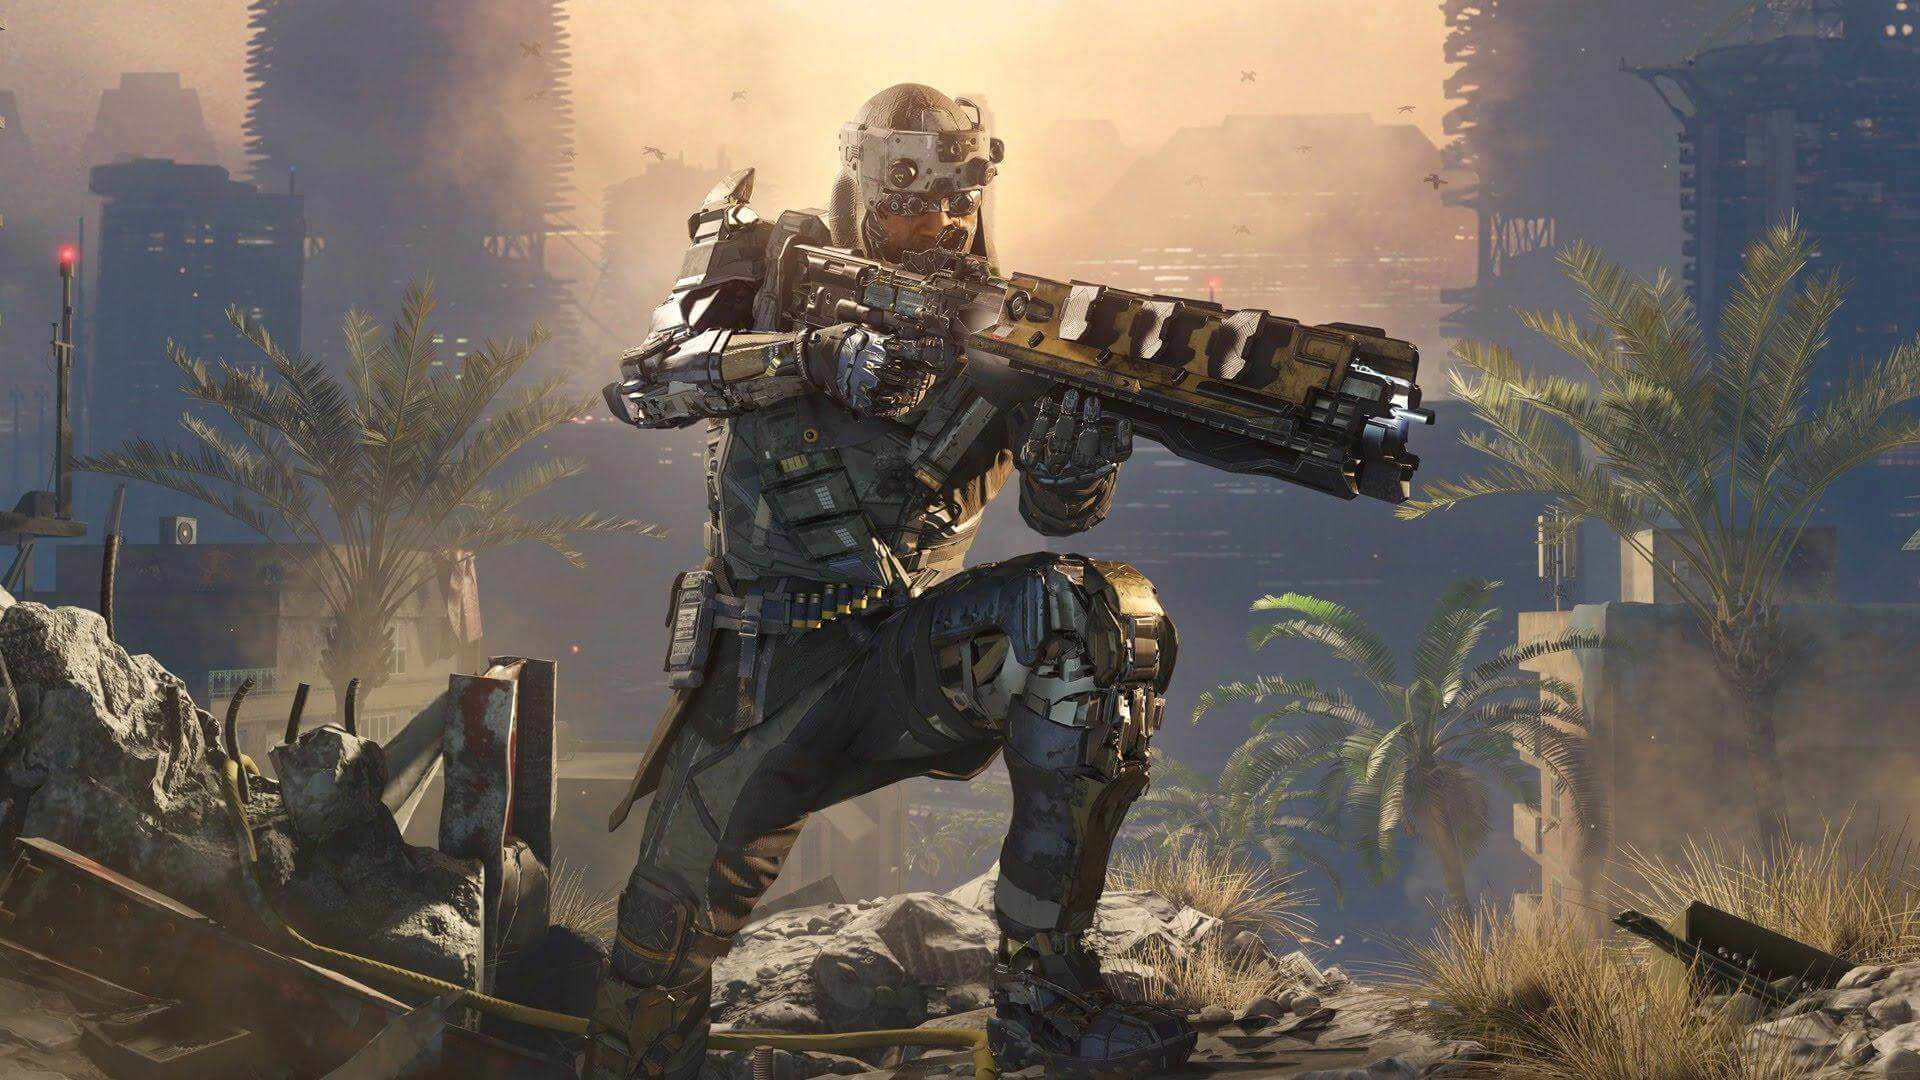 call of duty black ops 4 fan favorite map remakes zcv6 - Review: Call of Duty Black Ops 4 é ação e adrenalina na dose certa